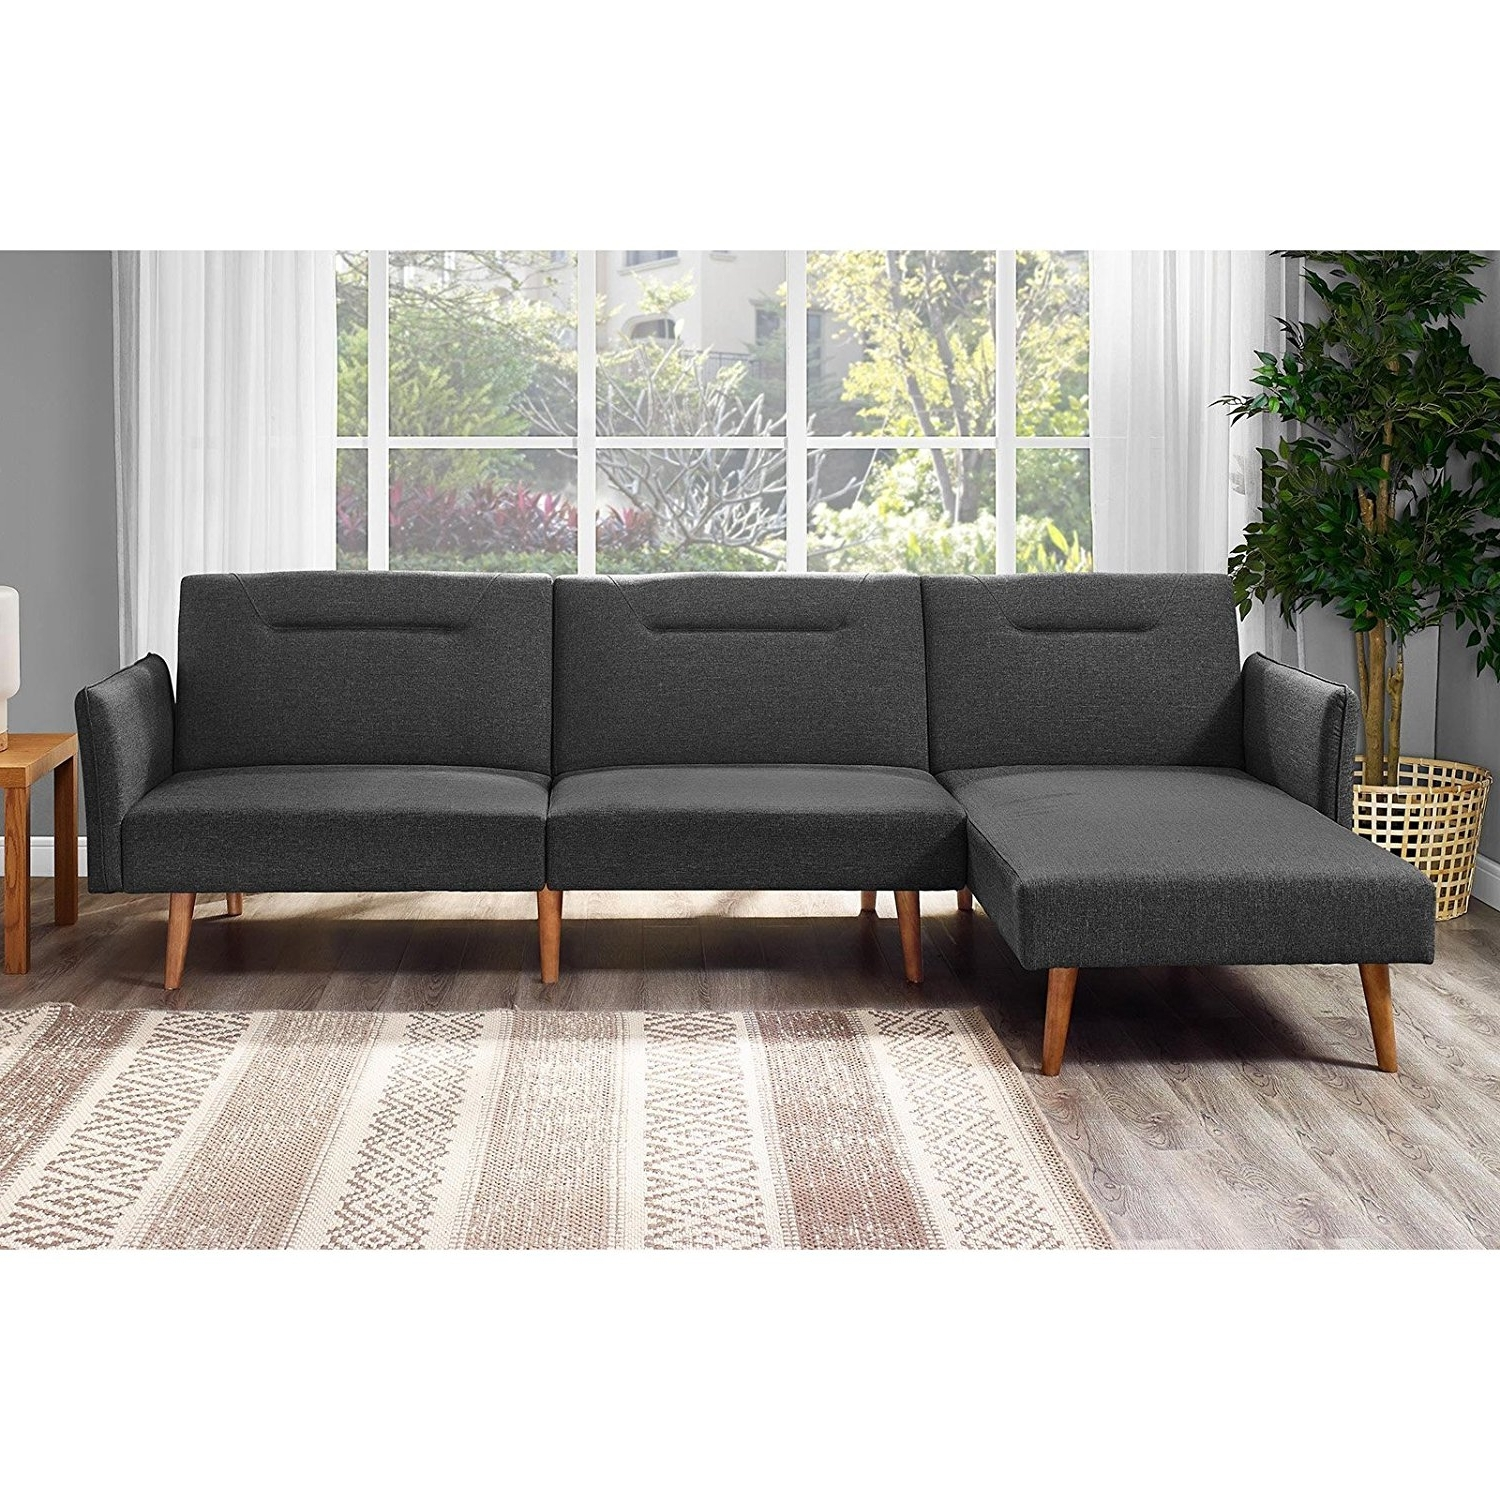 Most Current Amazon: Dhp Brent Futon Chaise: Kitchen & Dining Inside Futons With Chaise (View 8 of 15)